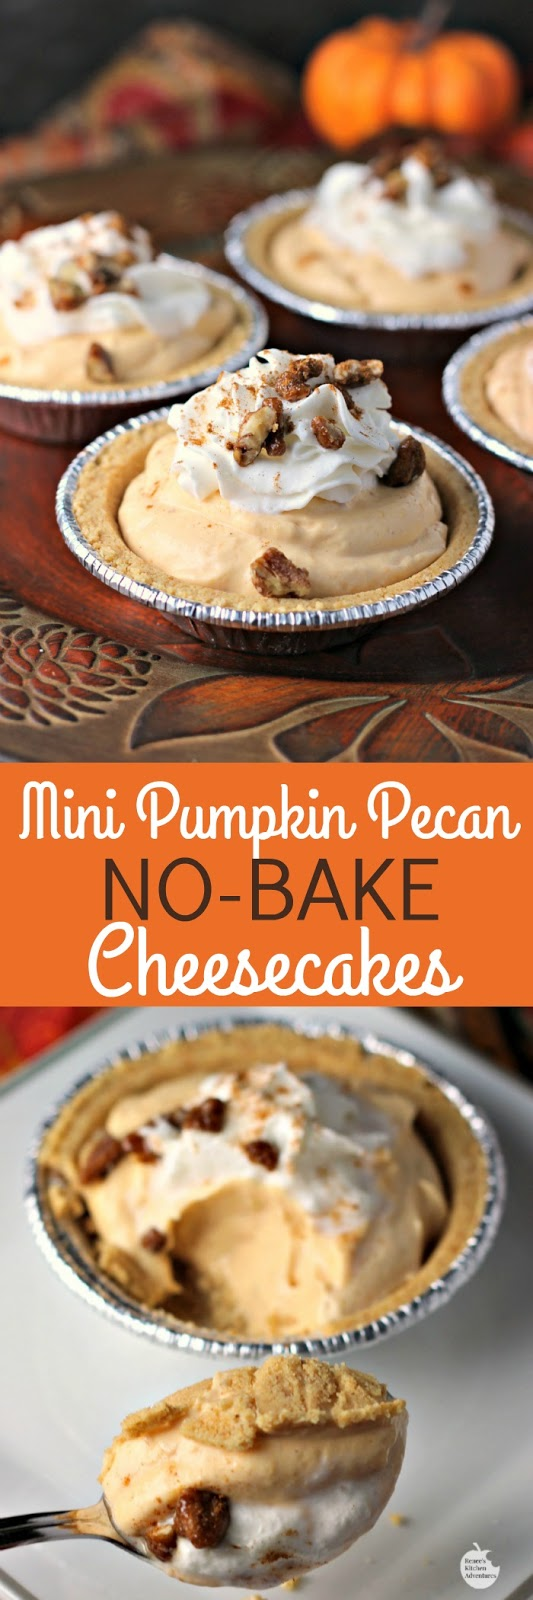 Mini Pumpkin Pecan No-Bake Cheesecakes | by Renee's Kitchen Adventures - easy dessert recipe for little pumpkin cheesecakes perfect for Thanksgiving or Christmas holidays #EffortlessPies ad